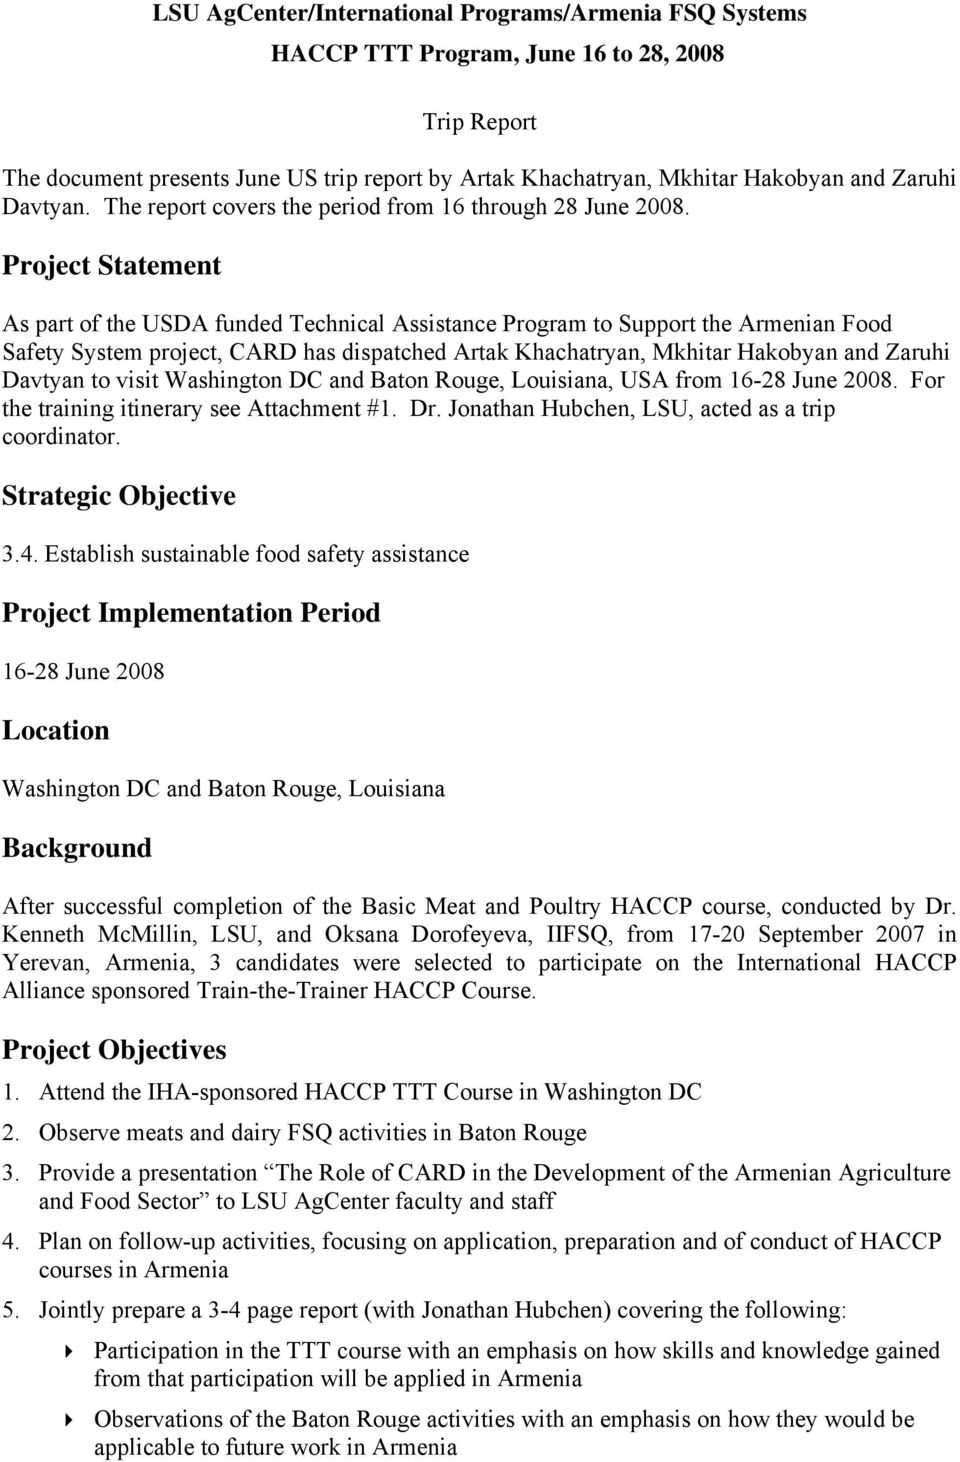 Project Statement As part of the USDA funded Technical Assistance Program to Support the Armenian Food Safety System project, CARD has dispatched Artak Khachatryan, Mkhitar Hakobyan and Zaruhi